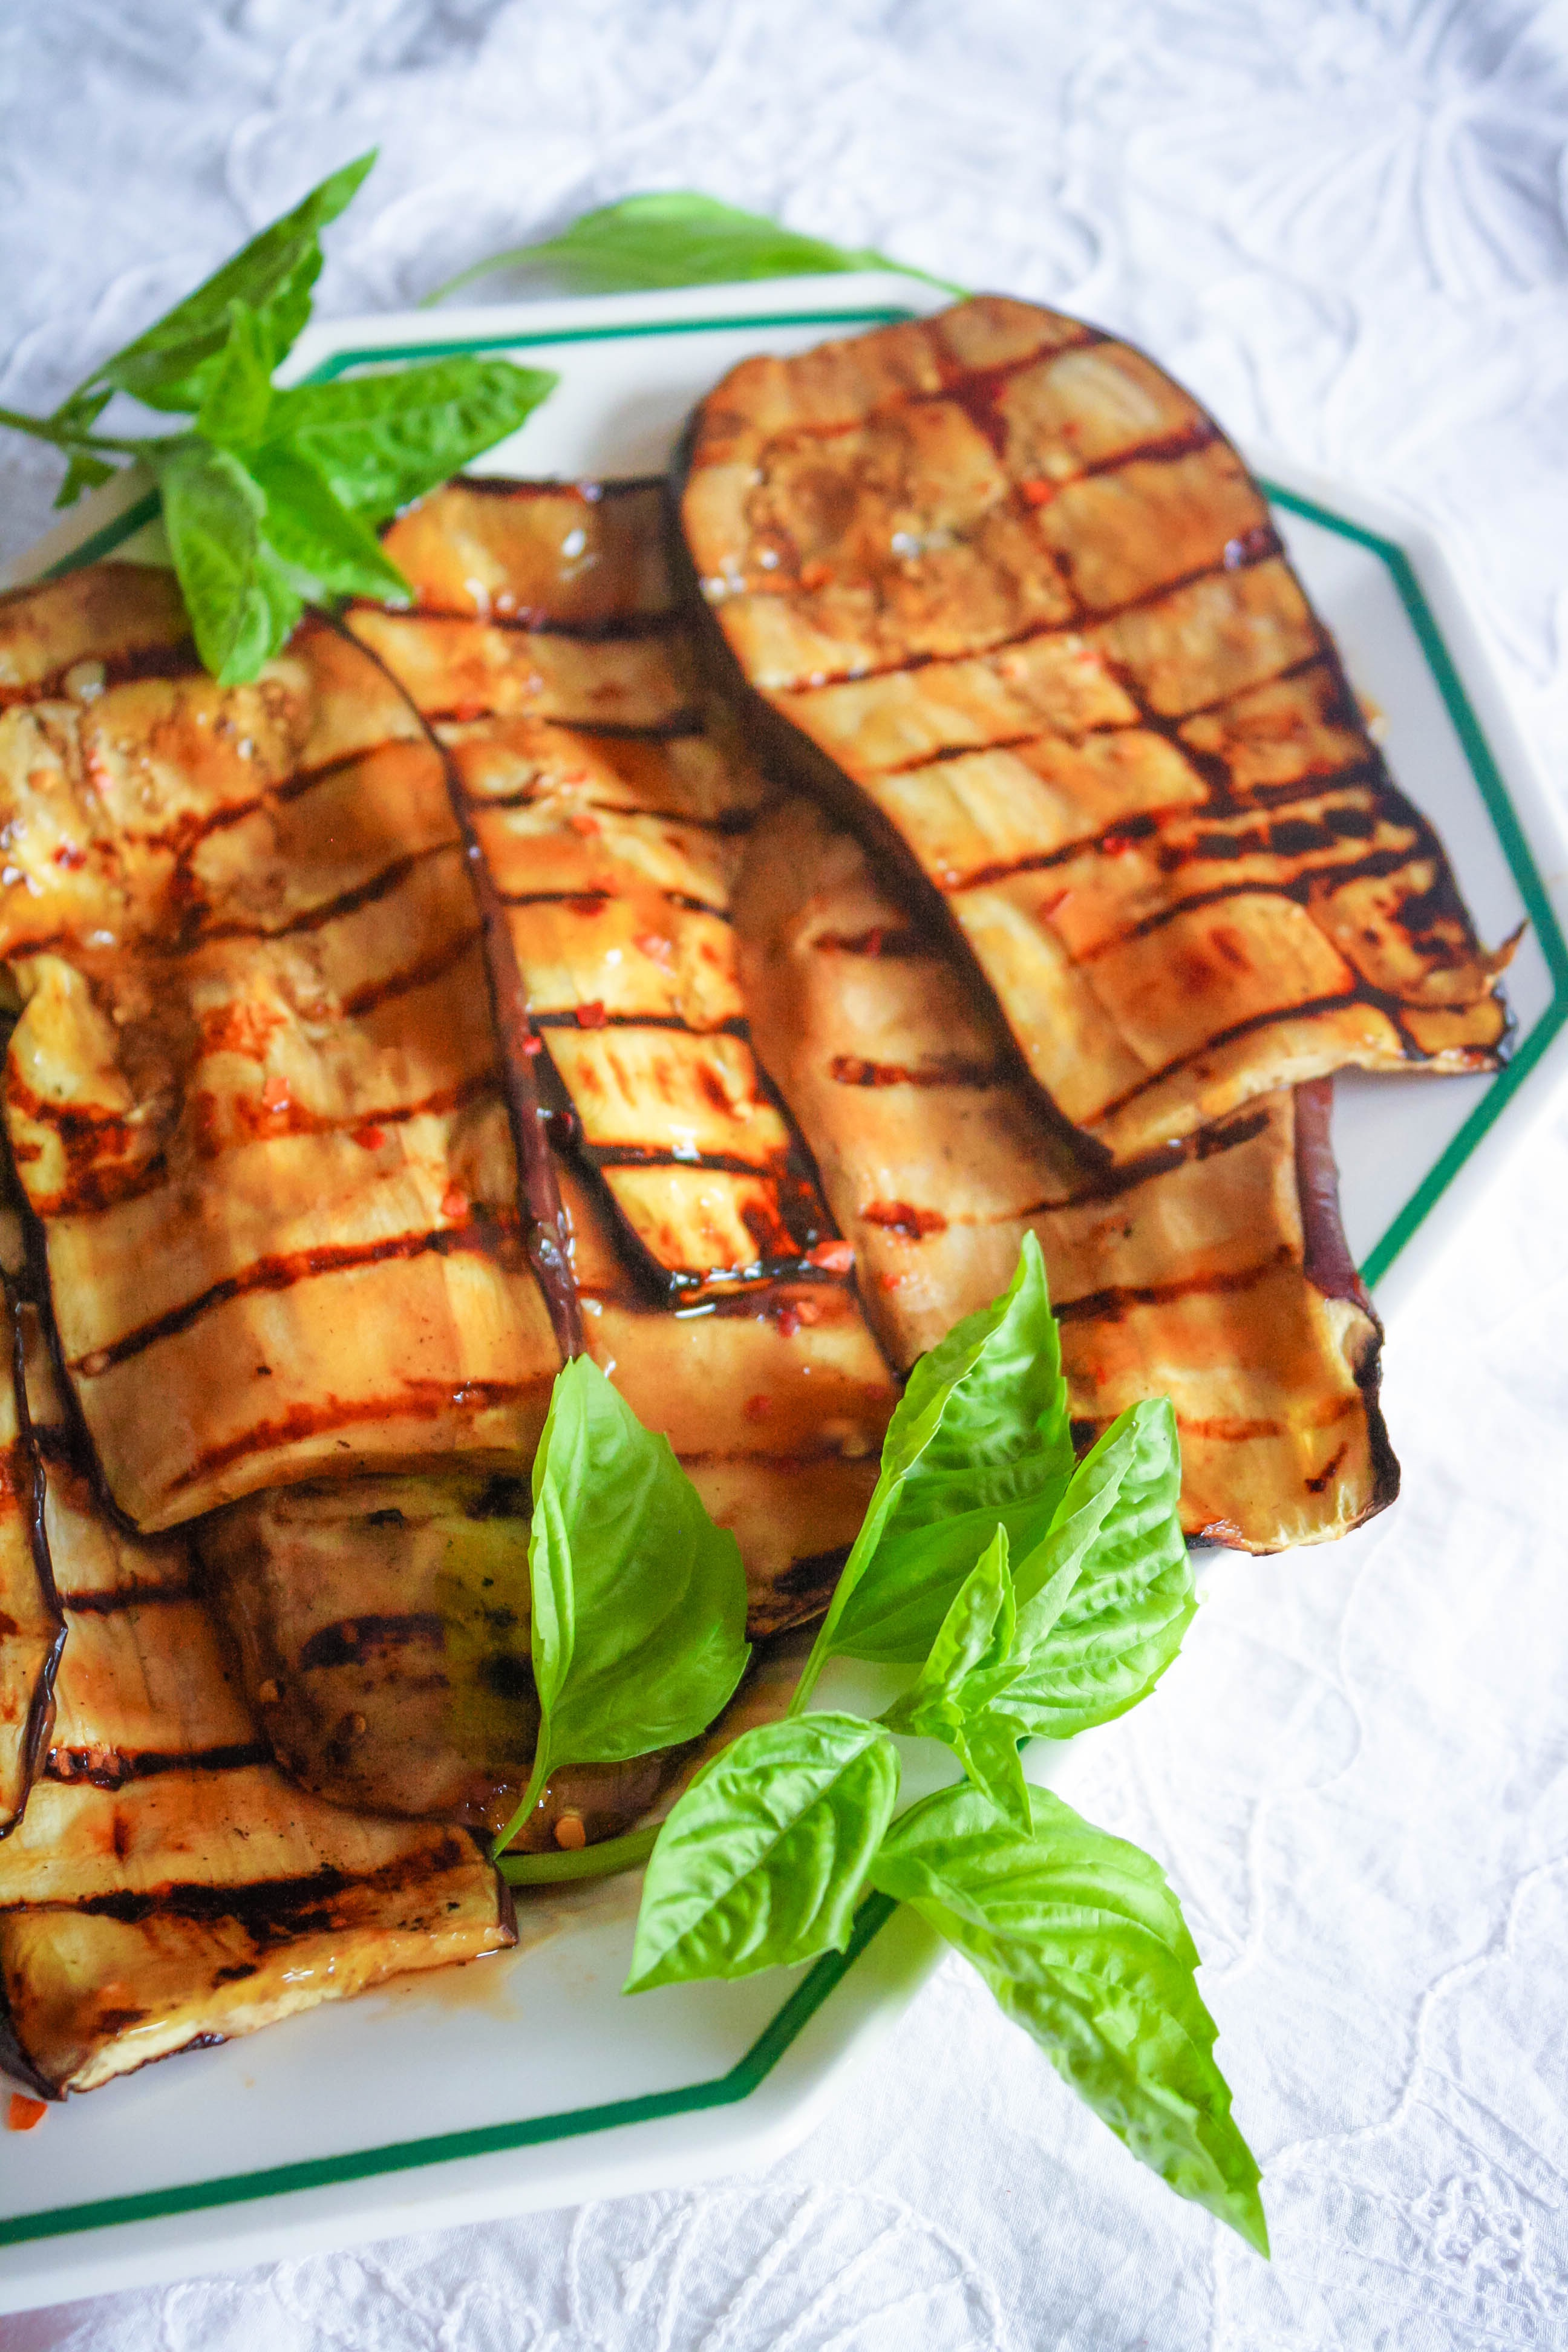 Grilled Eggplant with Teriyaki is a delicious summer dish. Grilled Eggplant with Teriyaki is full of flavor for a fab summer meal.